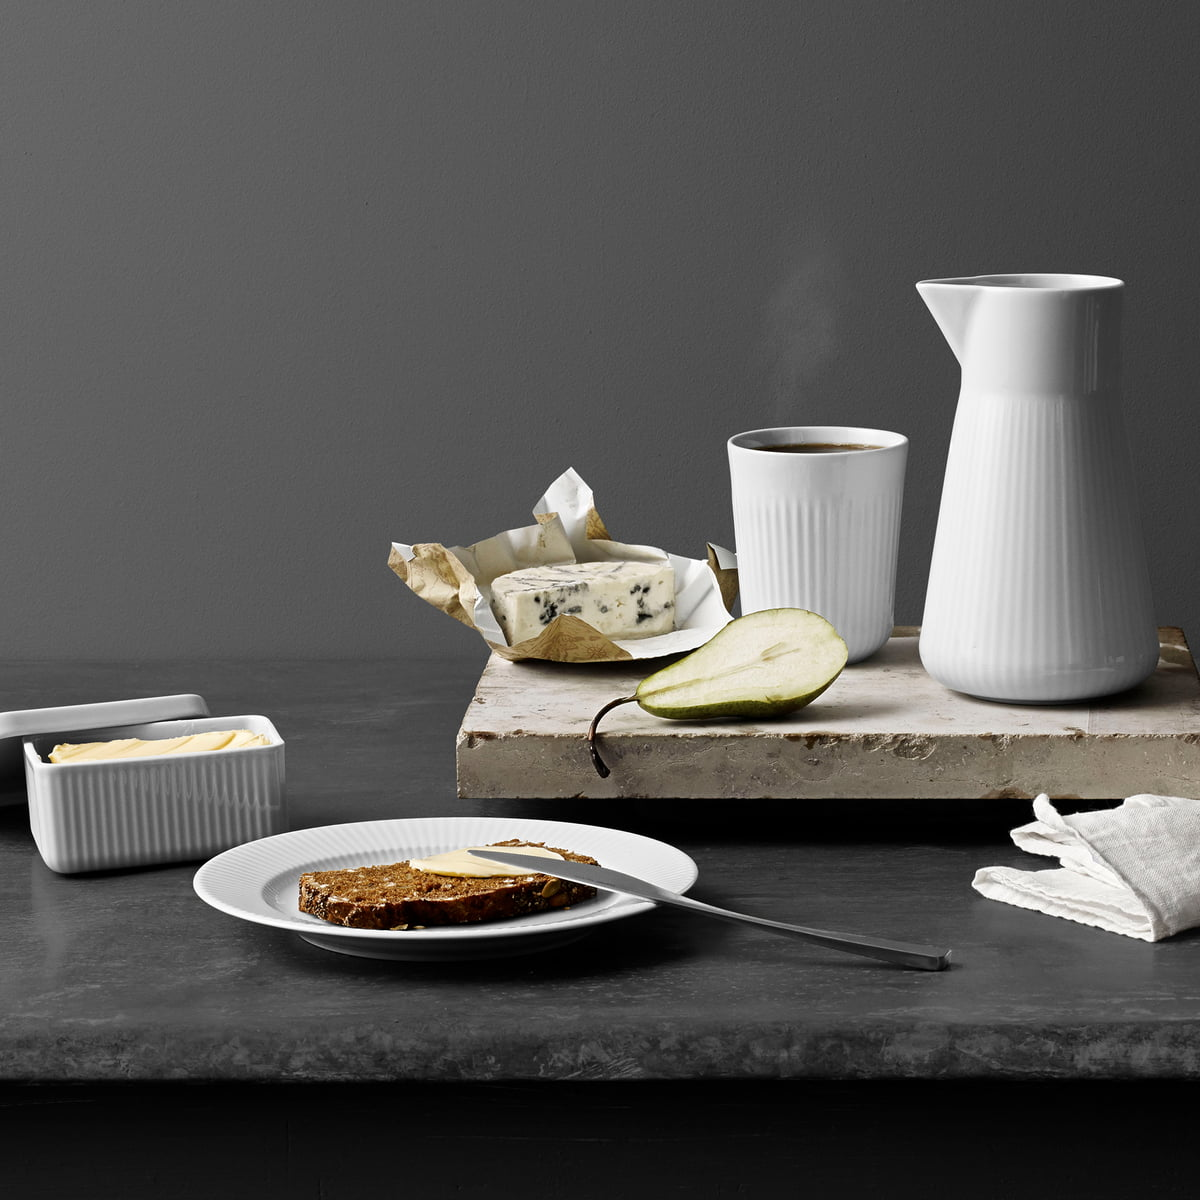 Legio Nova Tableware Series by Eva Trio & Buy the Legio Nova butter dish by Eva Trio